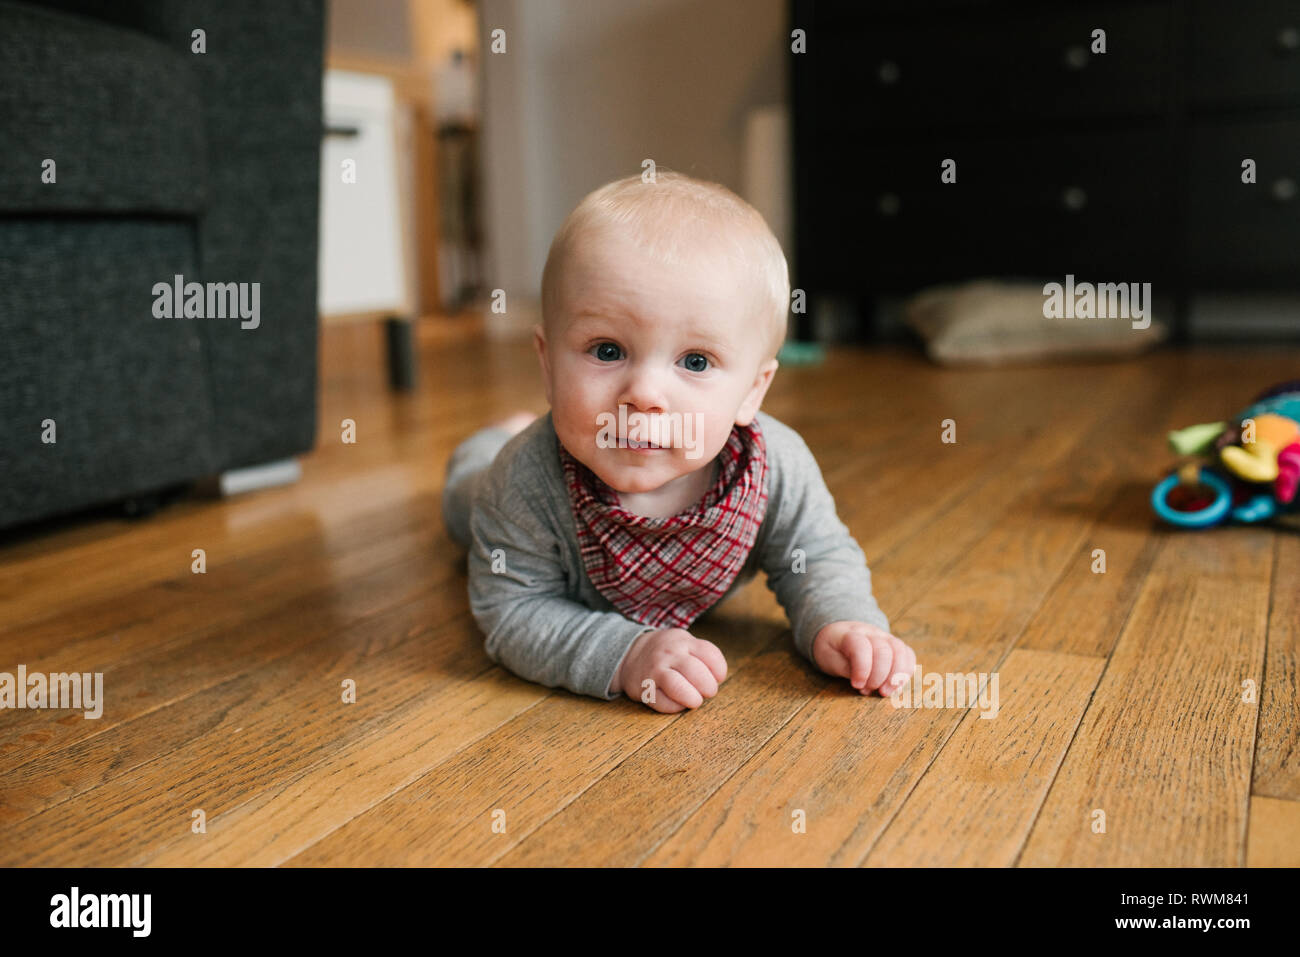 Baby boy crawling on wooden floor Stock Photo